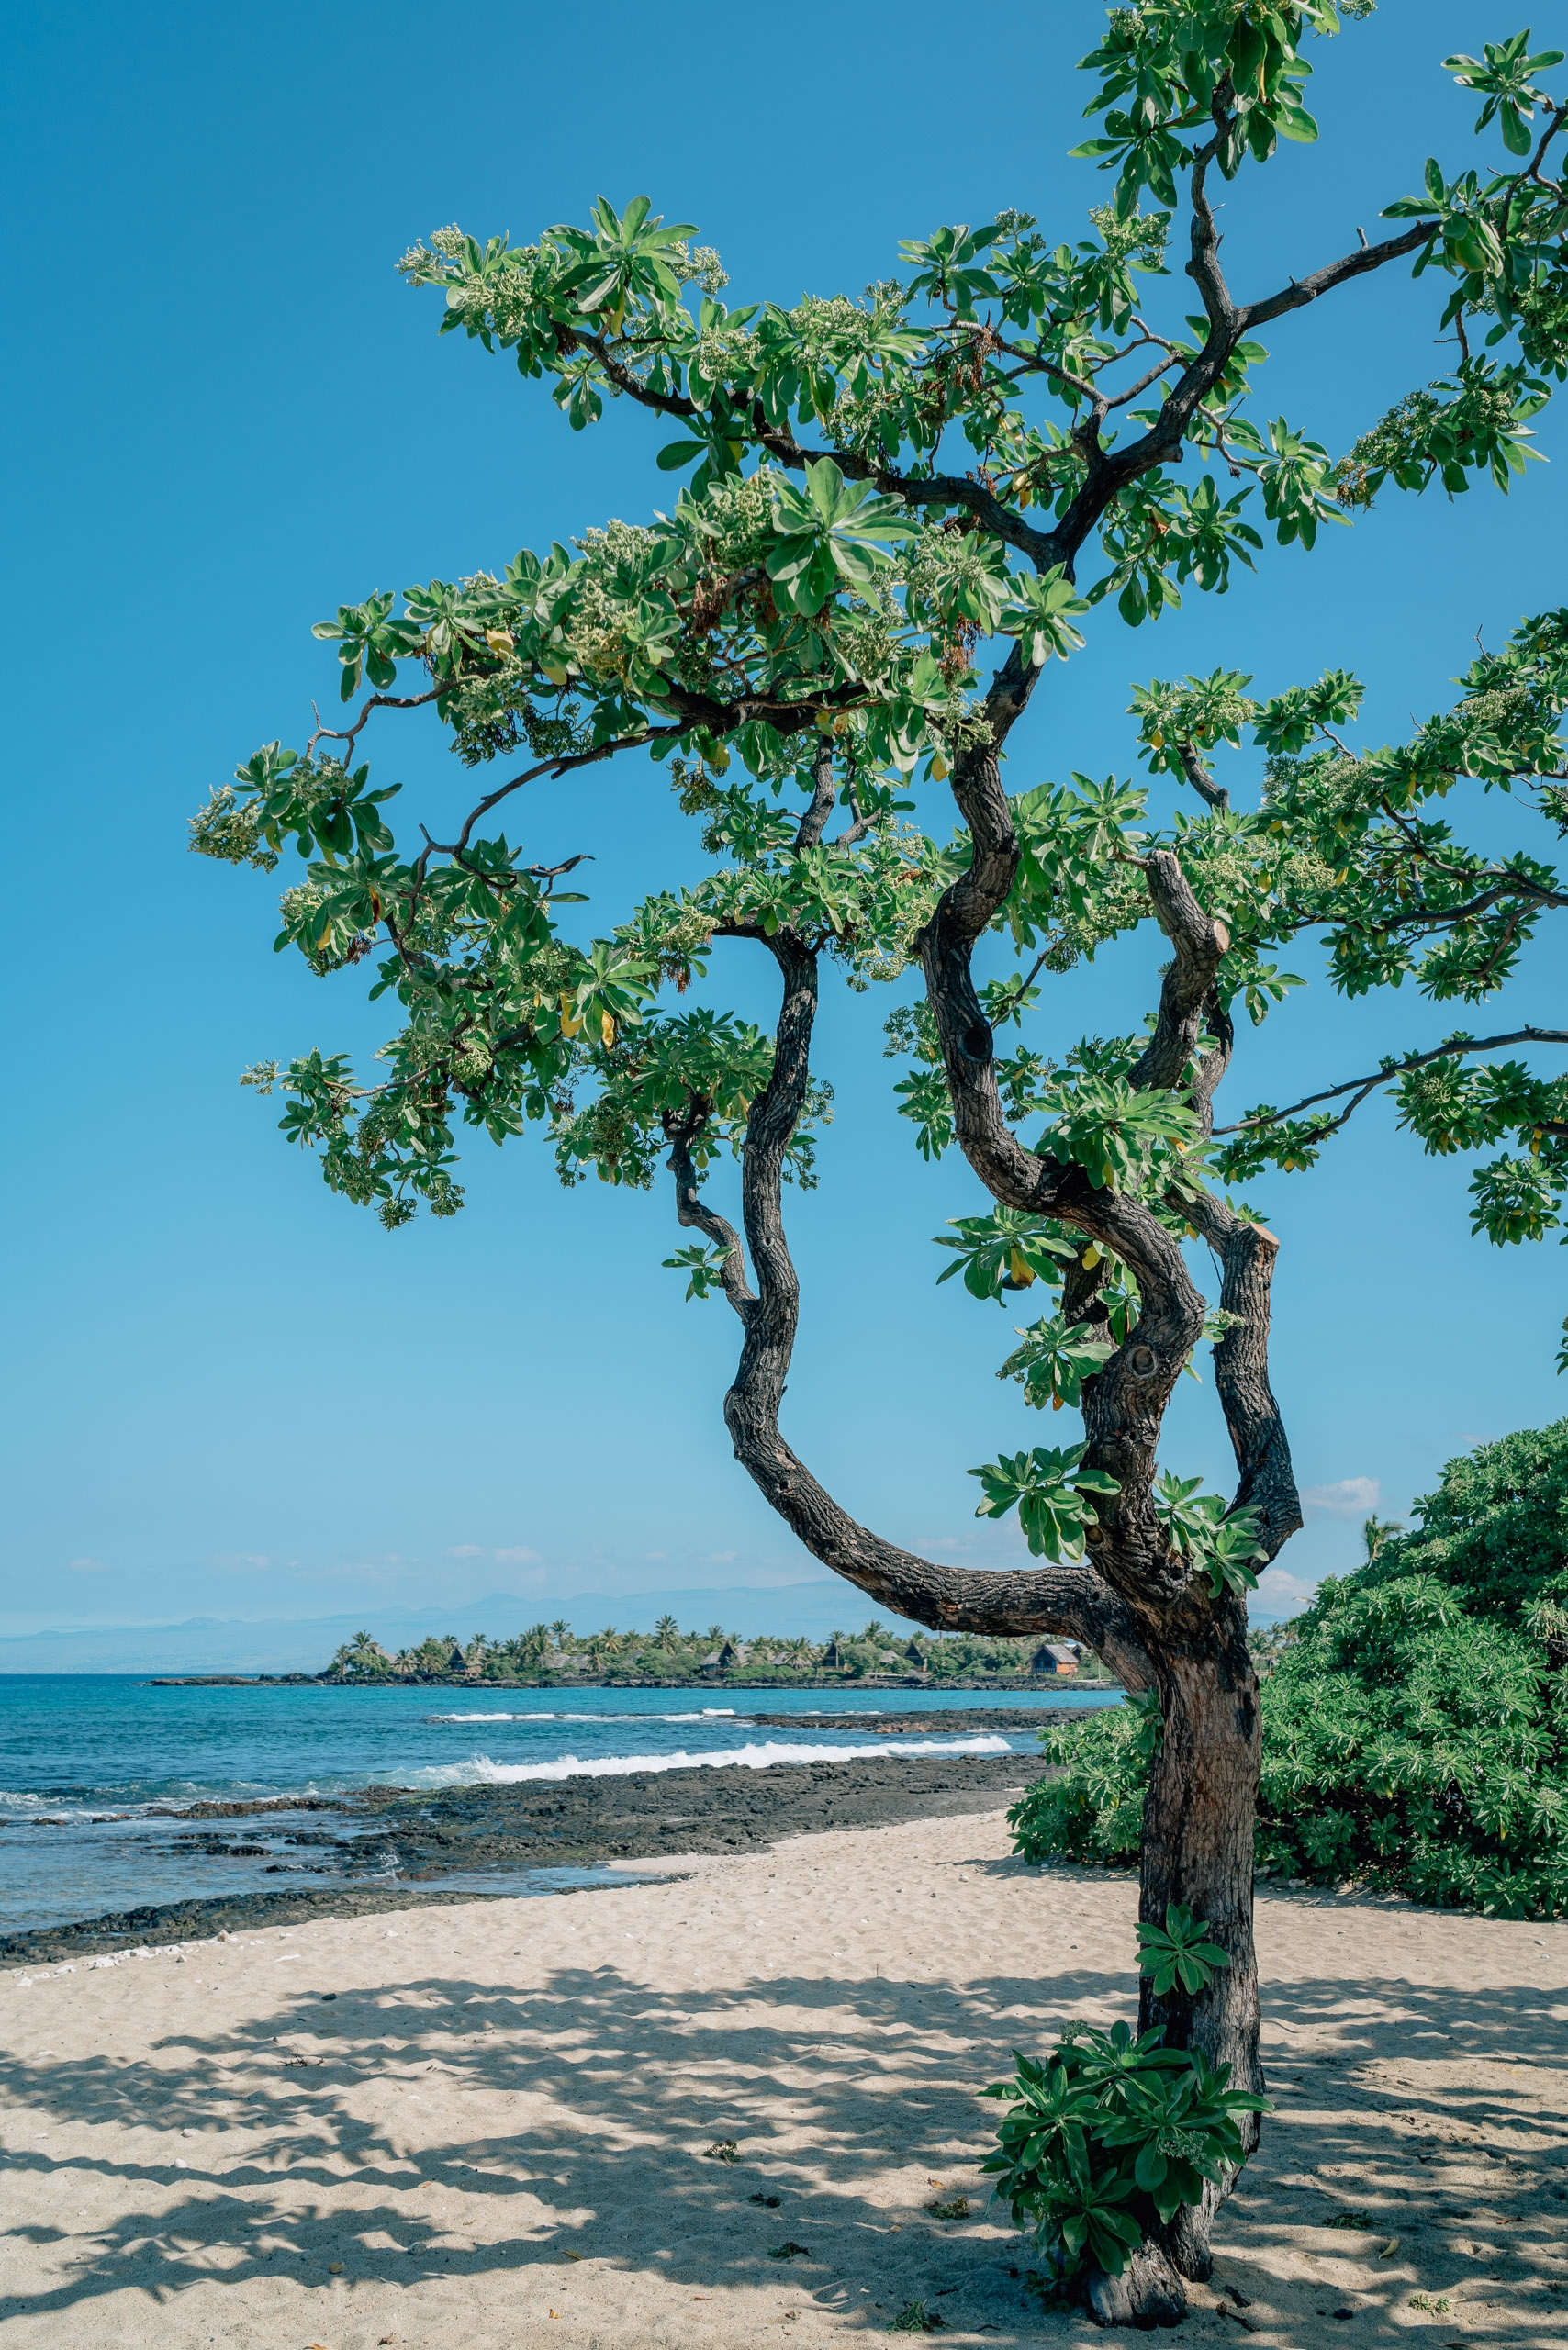 A Tree by the Beach